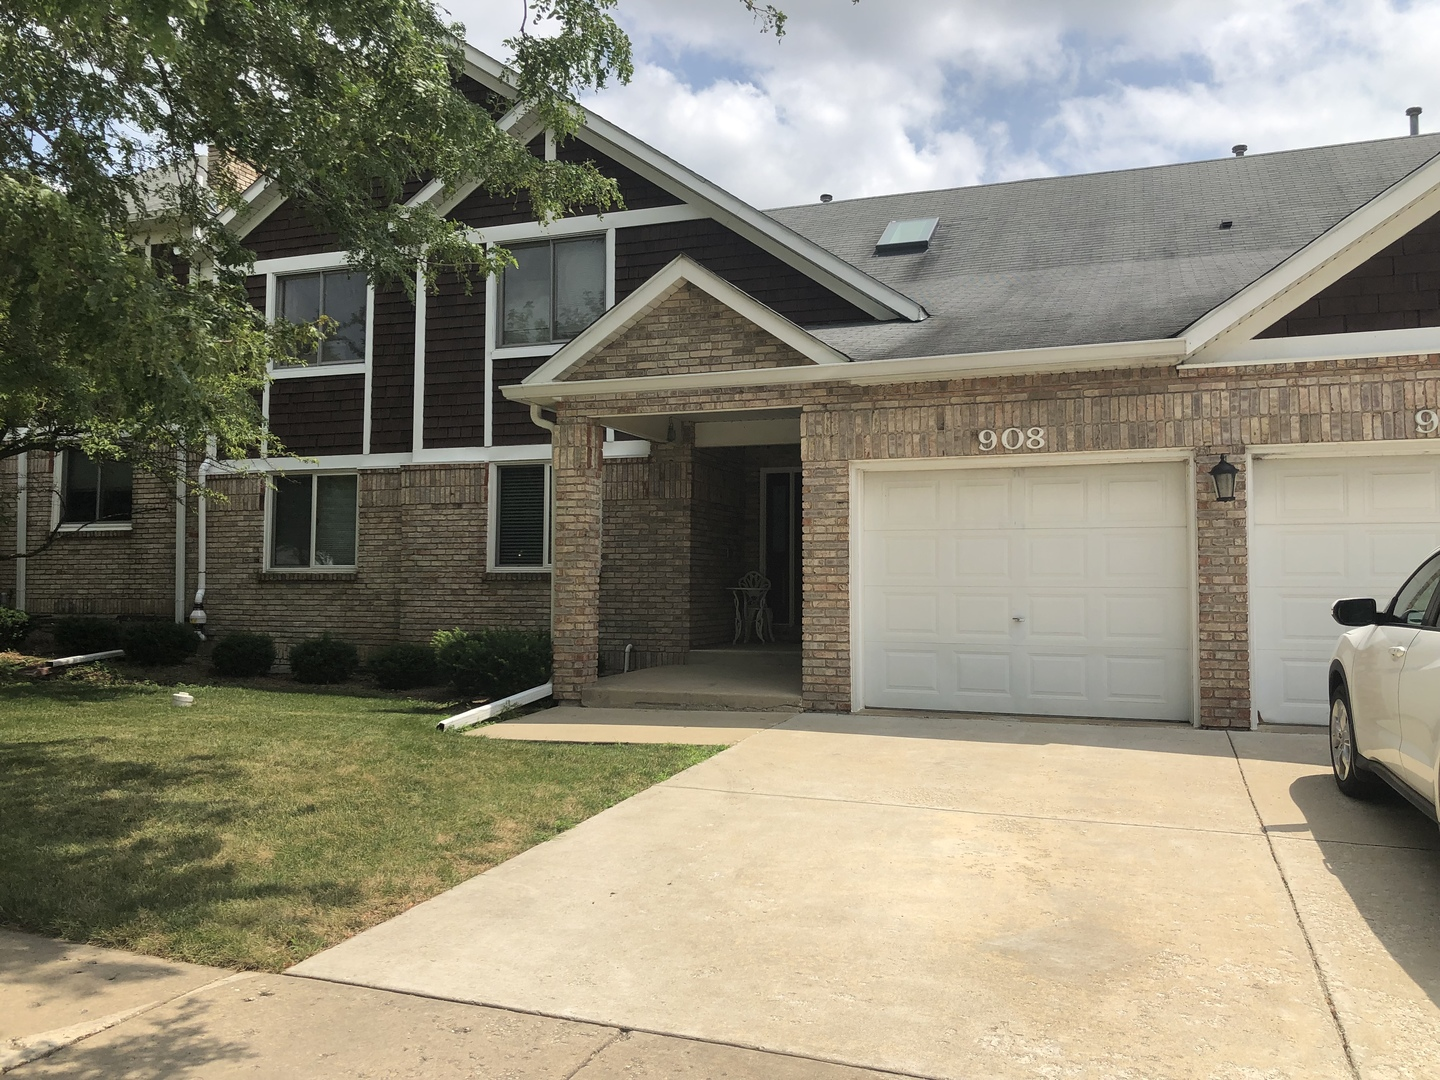 Photo for 908 Thornwood Drive, Unit Number 908, St. Charles, IL 60174 (MLS # 10483843)